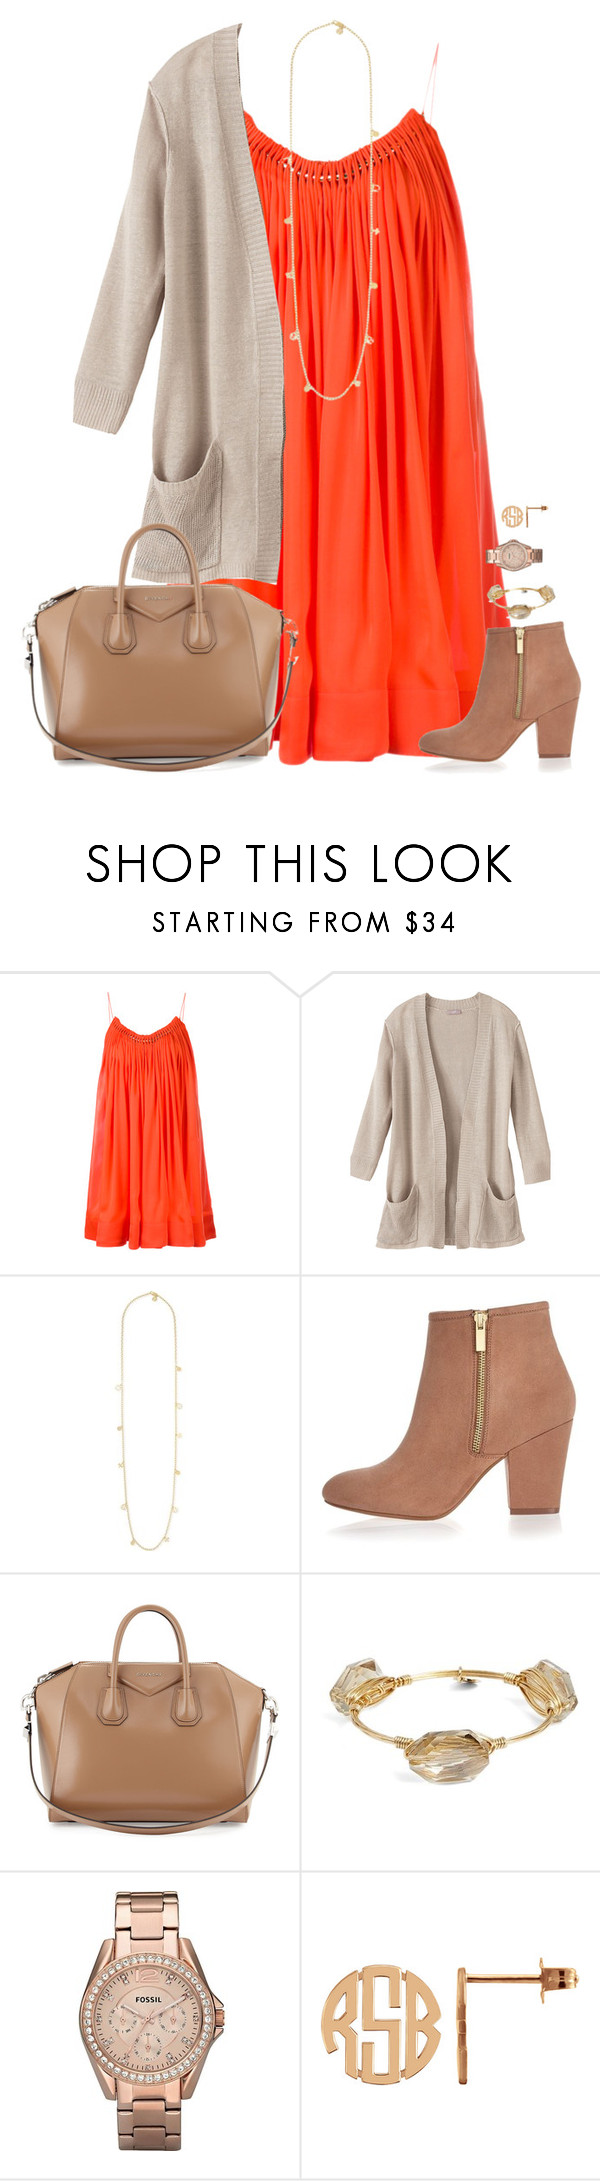 """""""those hugs where you just don't wanna let go.."""" by kaley-ii ❤ liked on Polyvore featuring STELLA McCARTNEY, Tory Burch, River Island, Givenchy, Bourbon and Boweties, FOSSIL, women's clothing, women's fashion, women and female"""